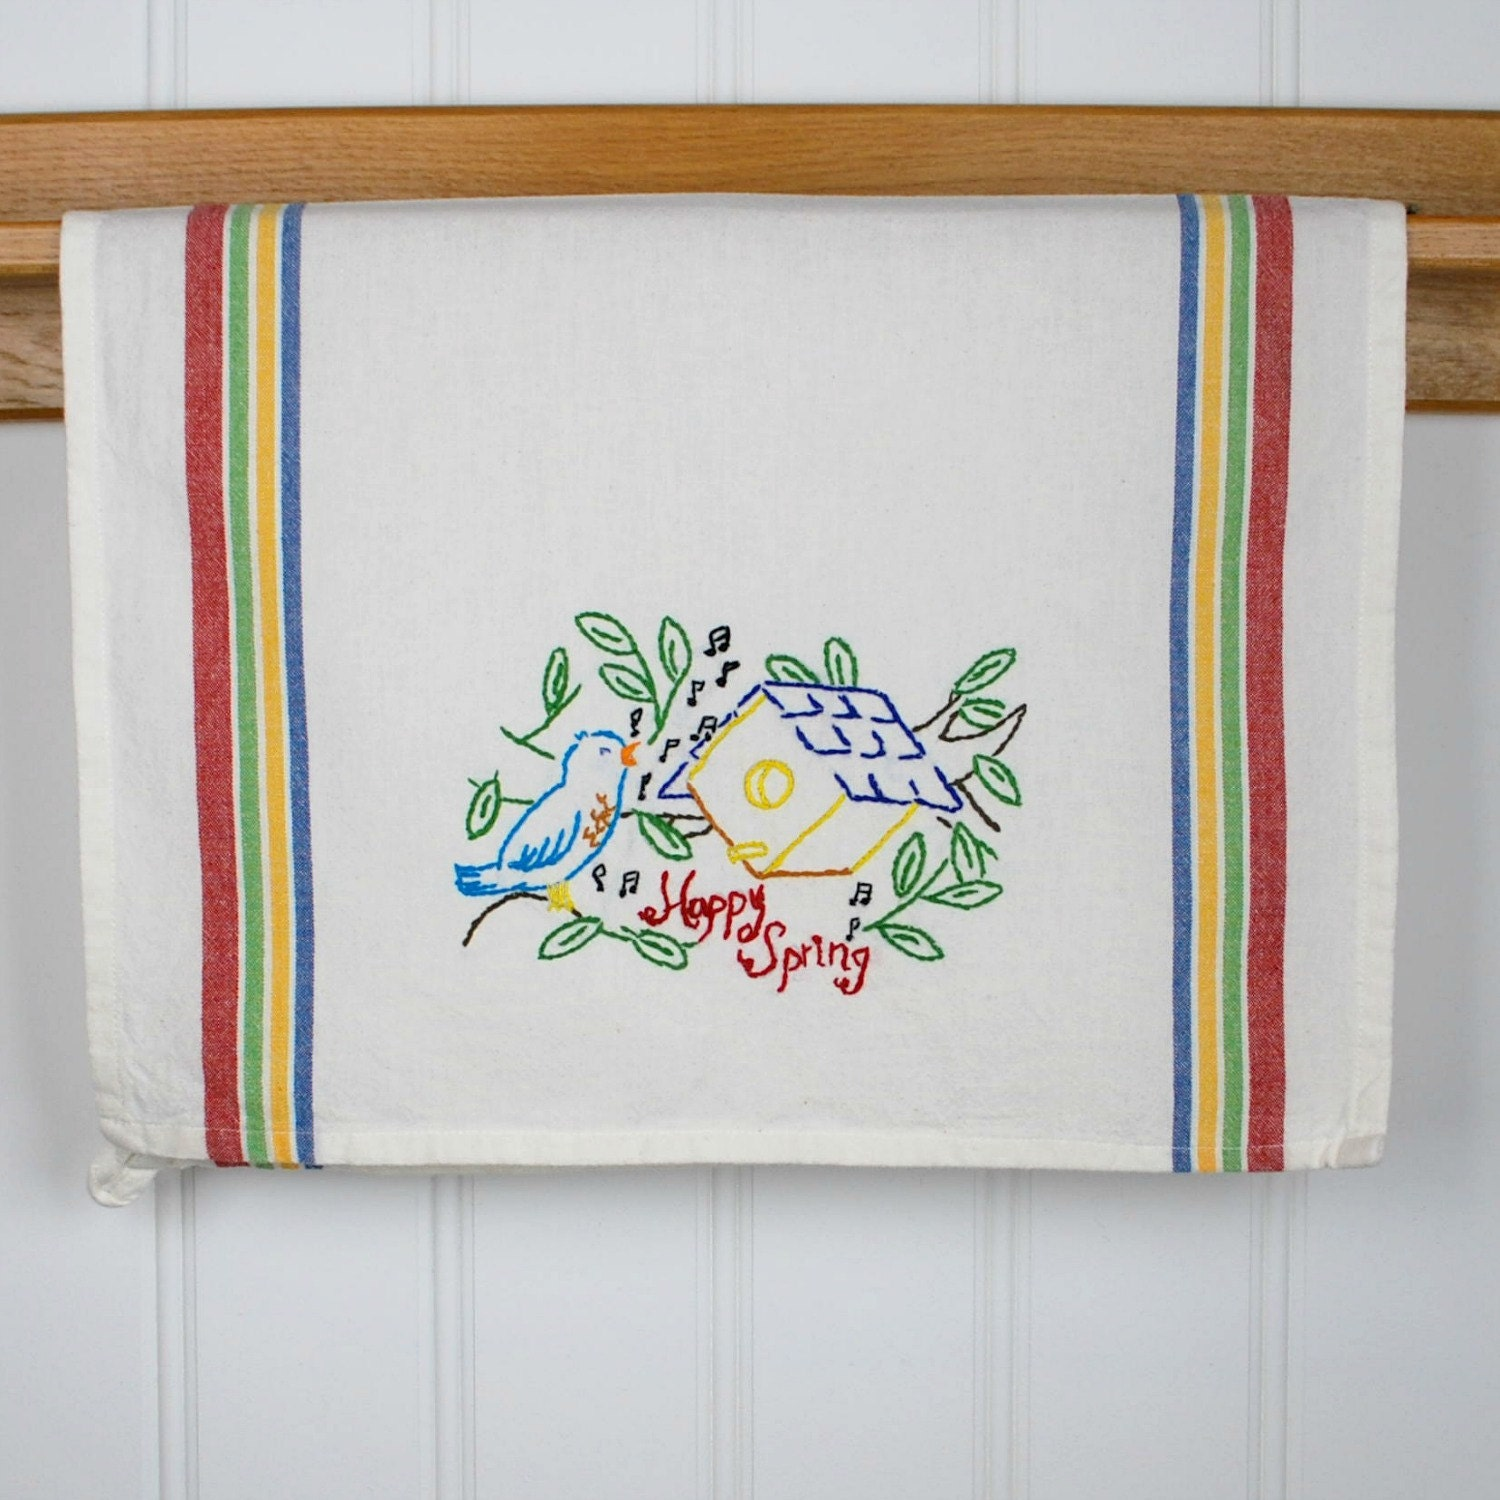 Embroidered Towels Custom: Hand Embroidered Tea Towel Kitchen Towel Embroidered Dish